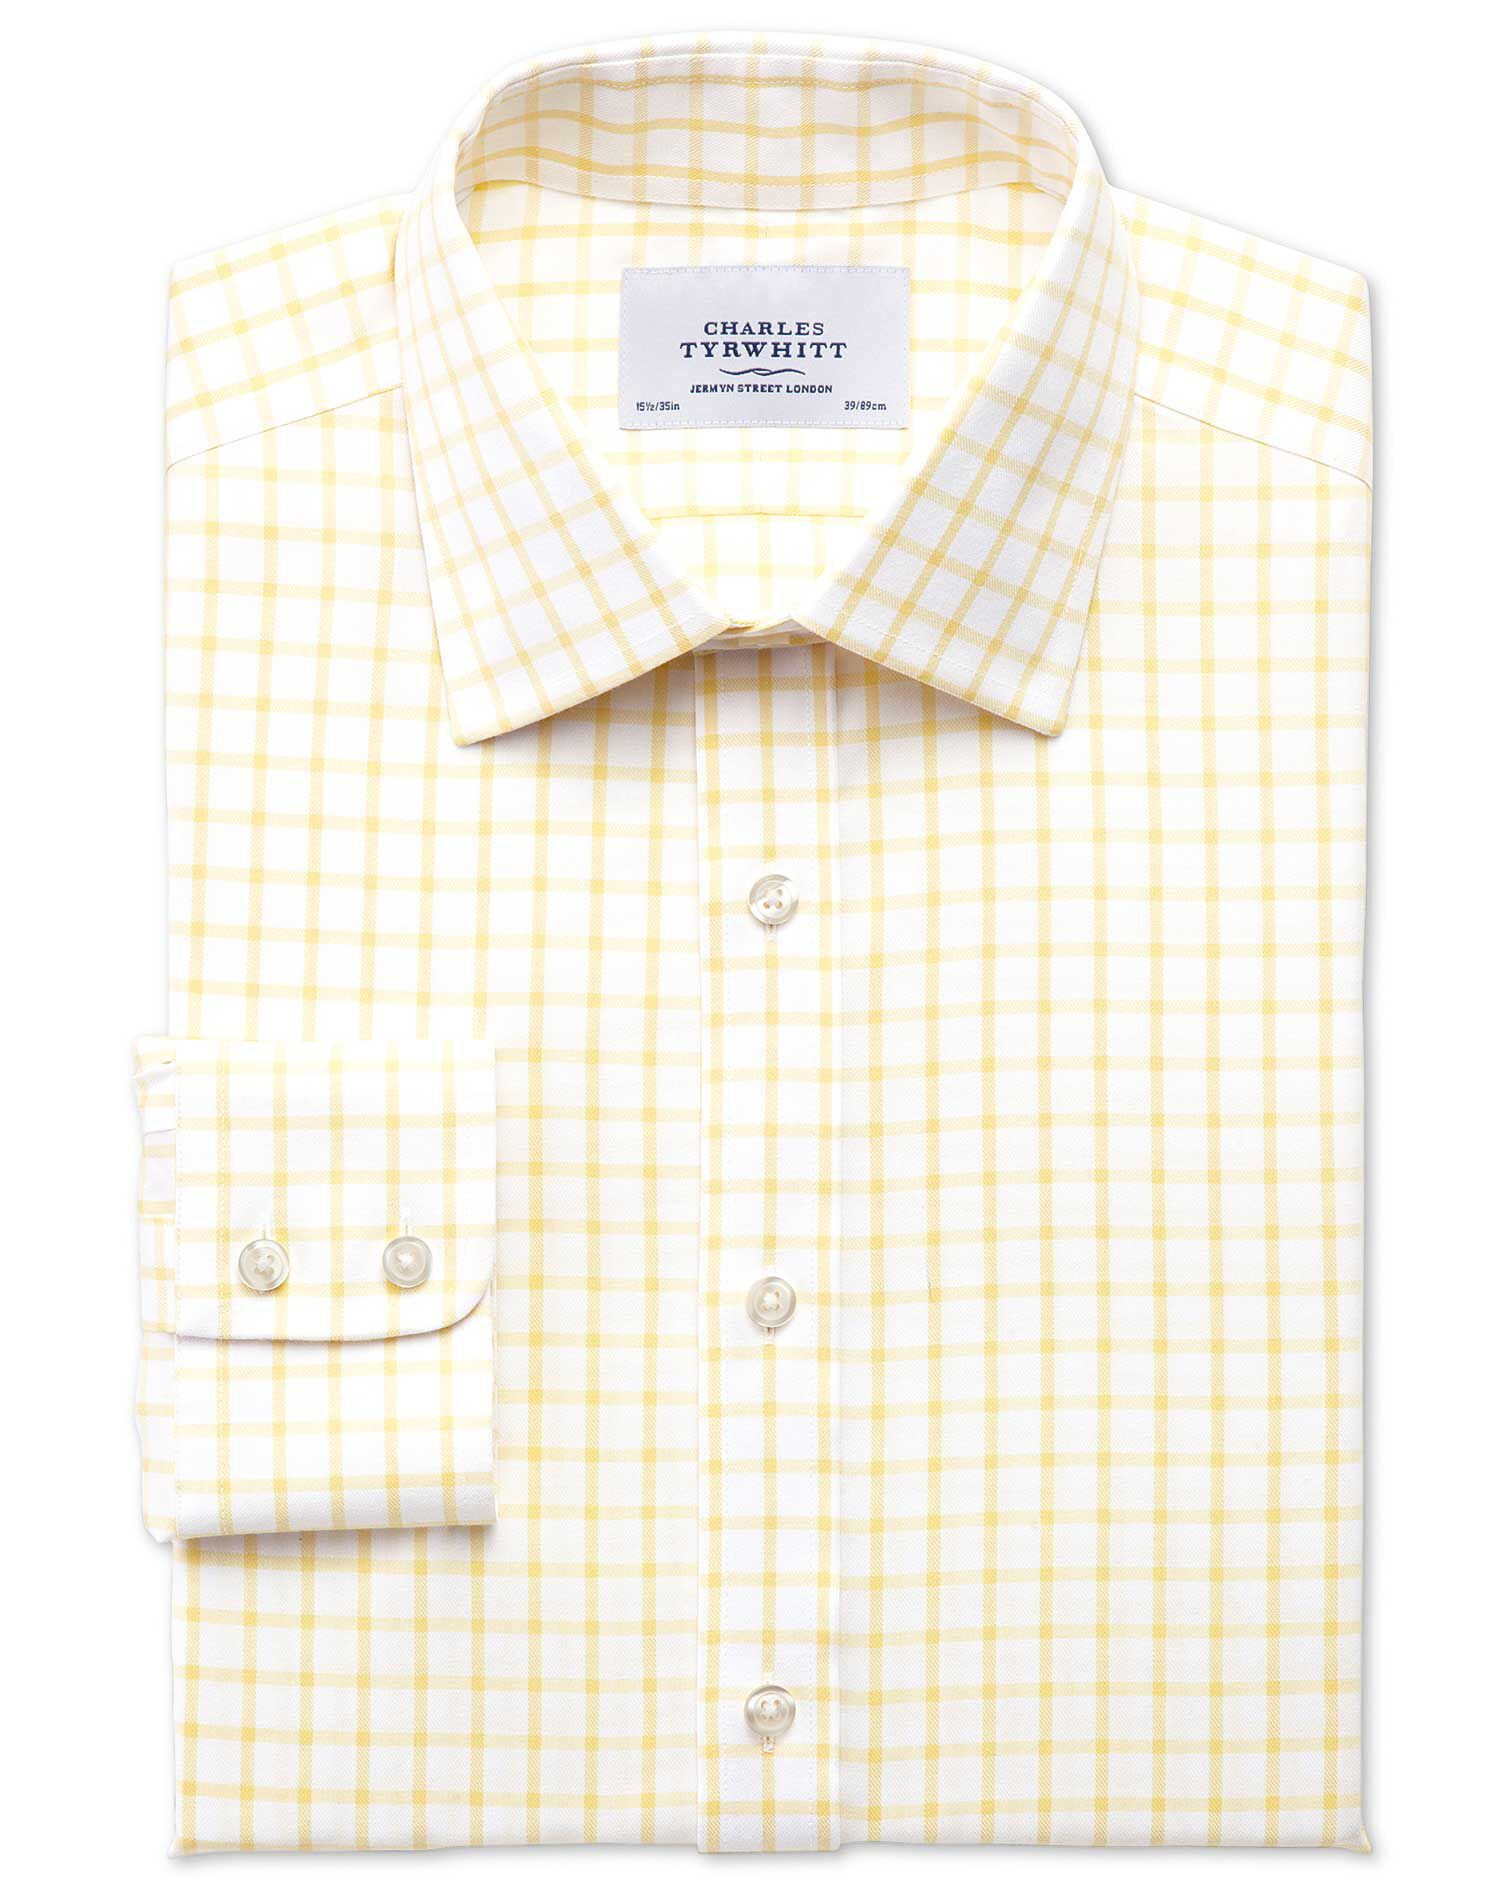 Classic Fit Non-Iron Twill Grid Check Light Yellow Cotton Formal Shirt Single Cuff Size 16/34 by Cha